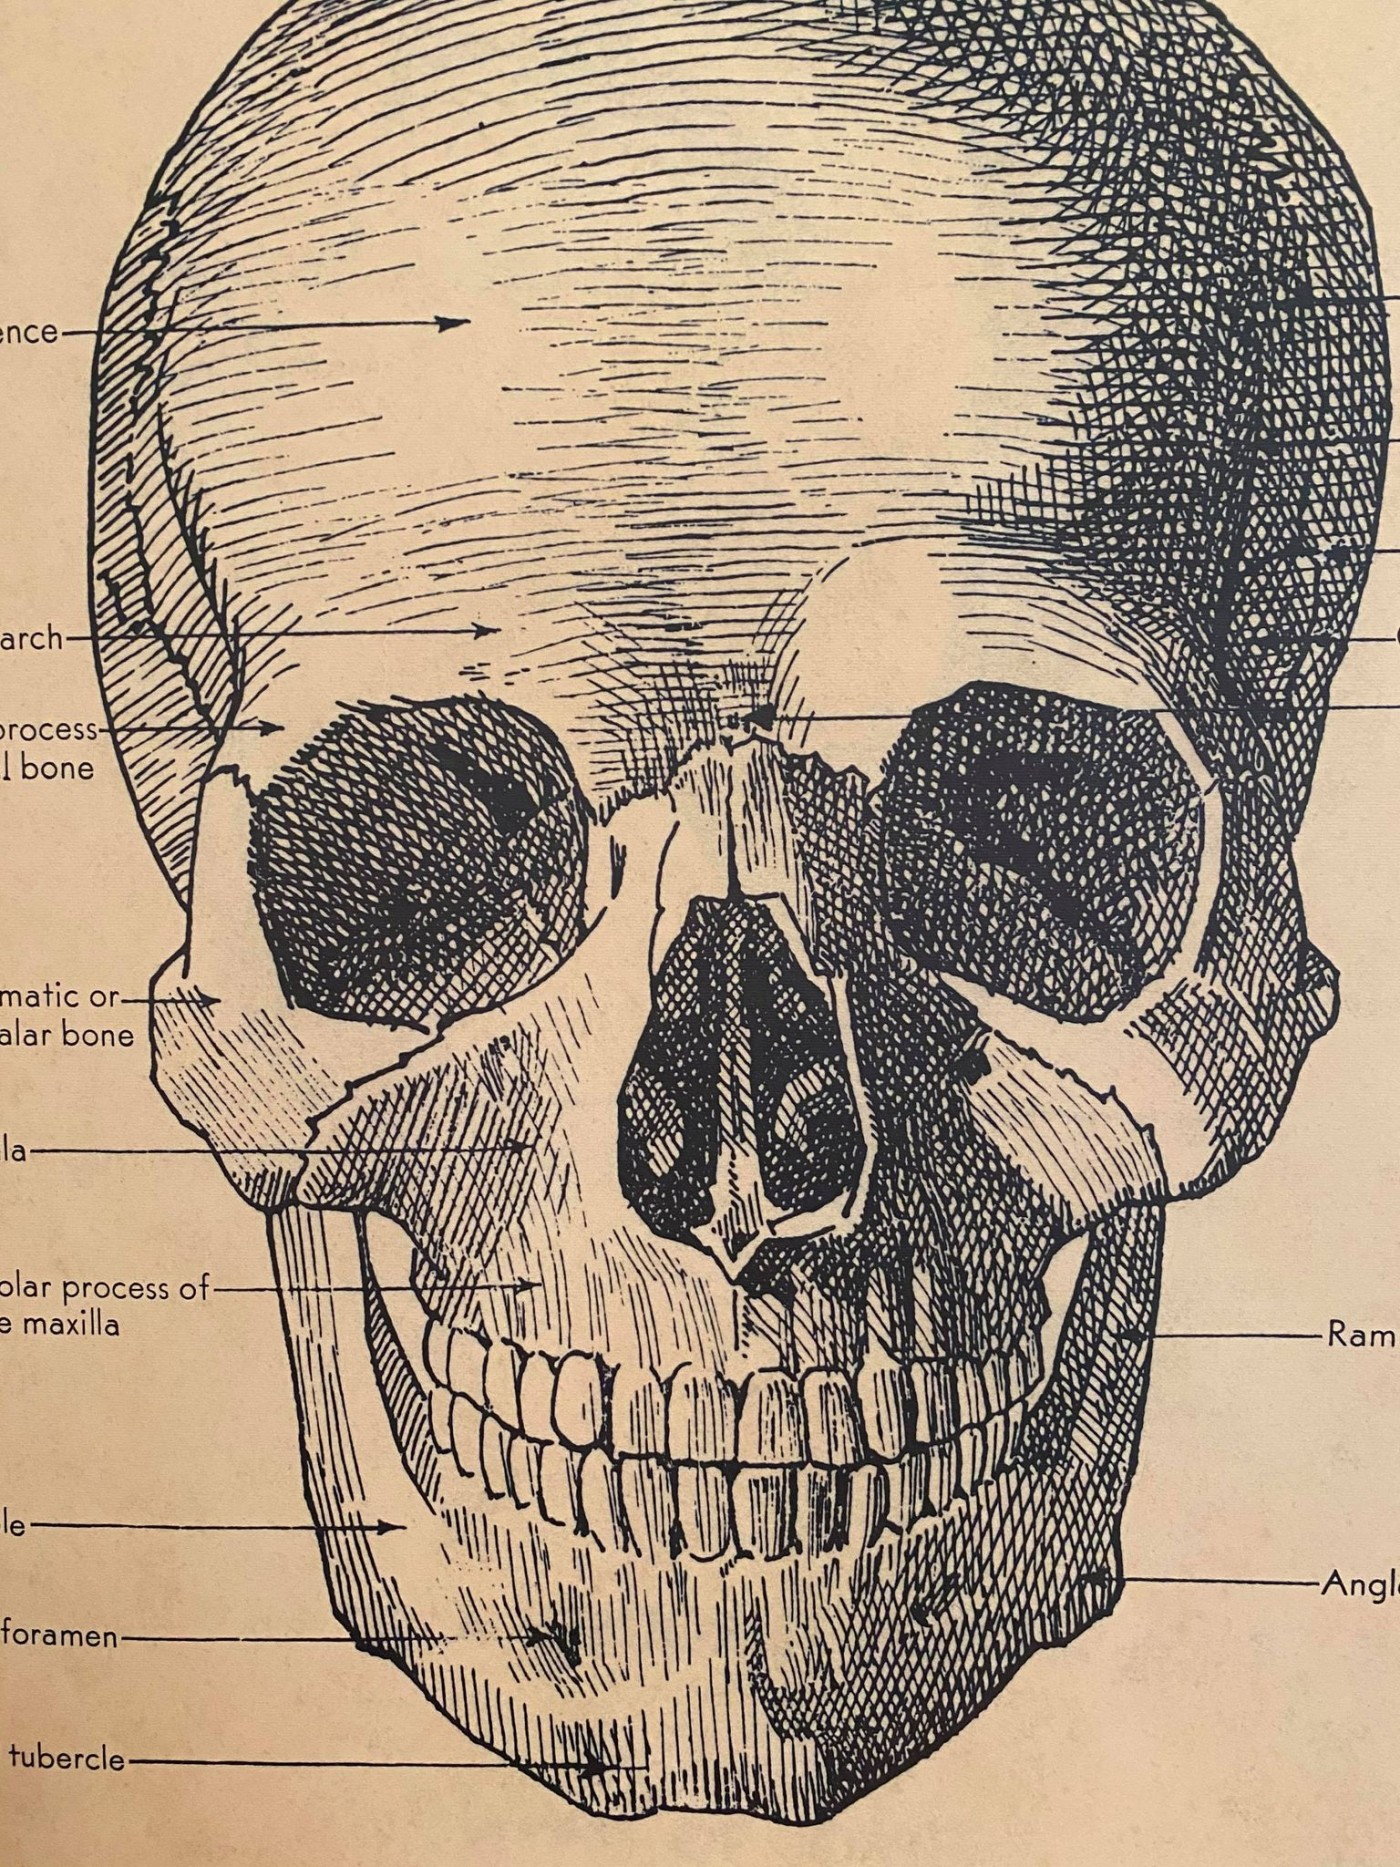 Poster of a skull